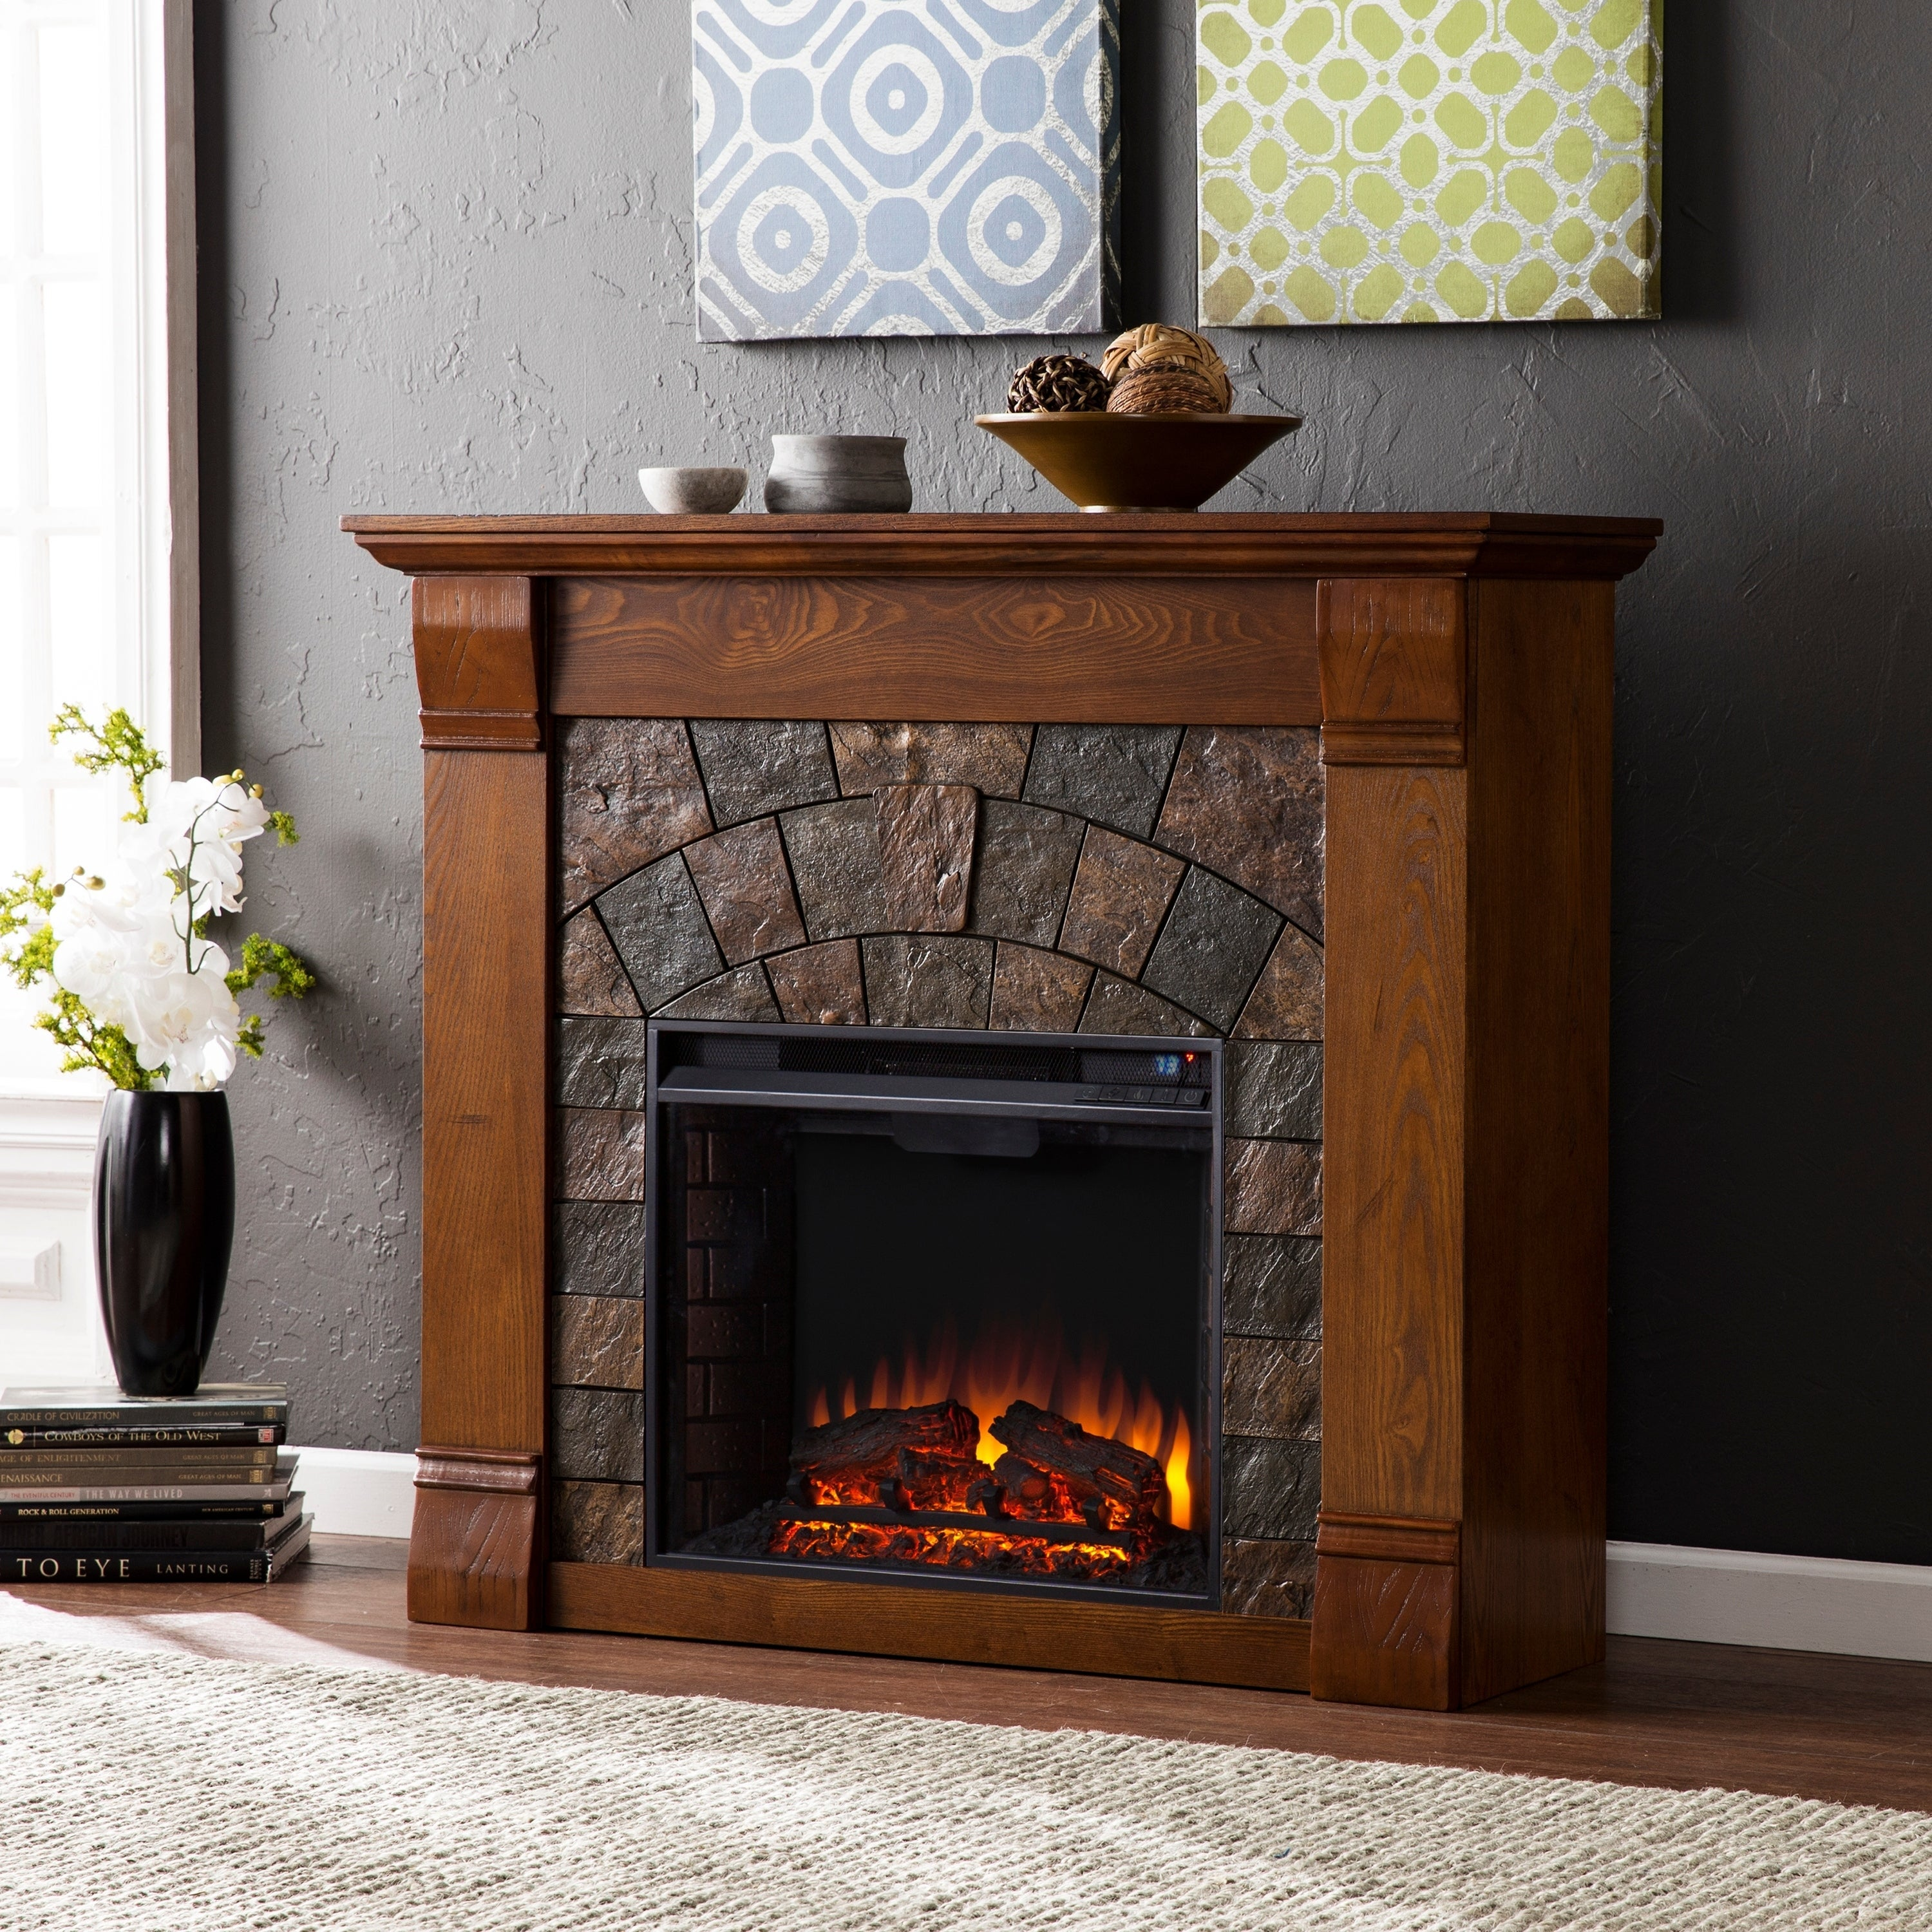 pdp alvar electric reviews fireplace darby energy improvement efficient co home simulated wayfair ca